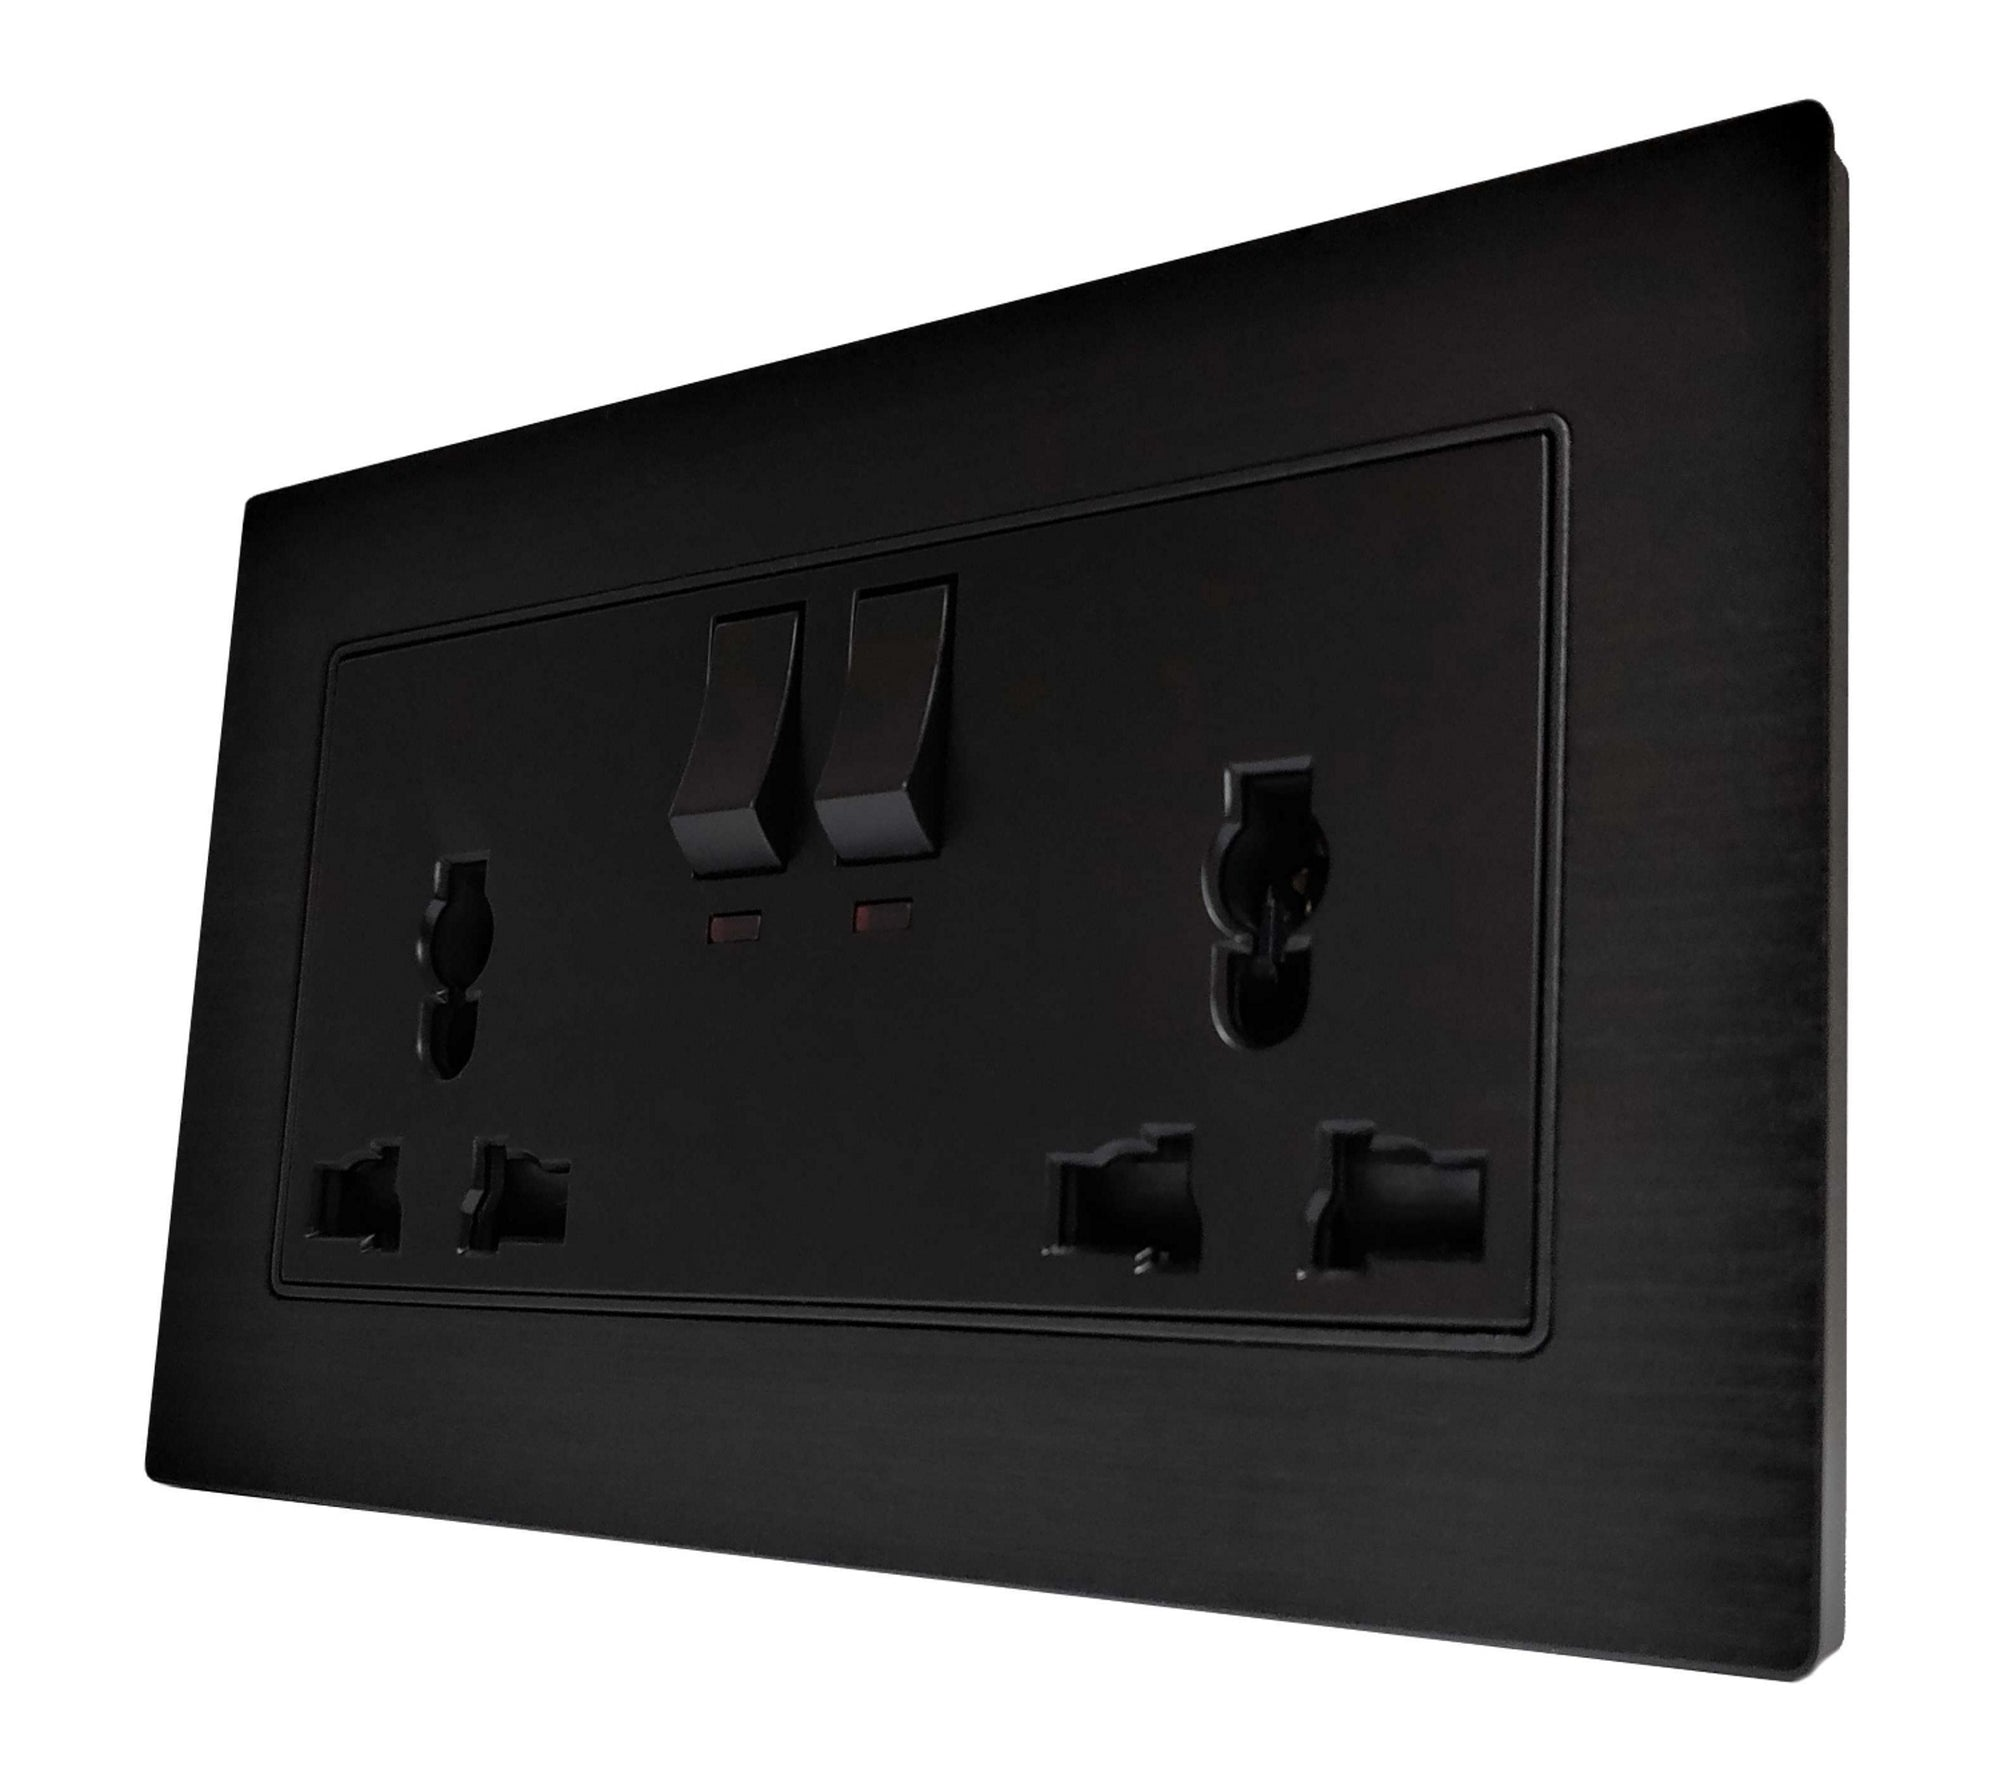 Double Universal Multi-Function AC Wall Power Socket in Black Brushed Alum Frame & Black Centre